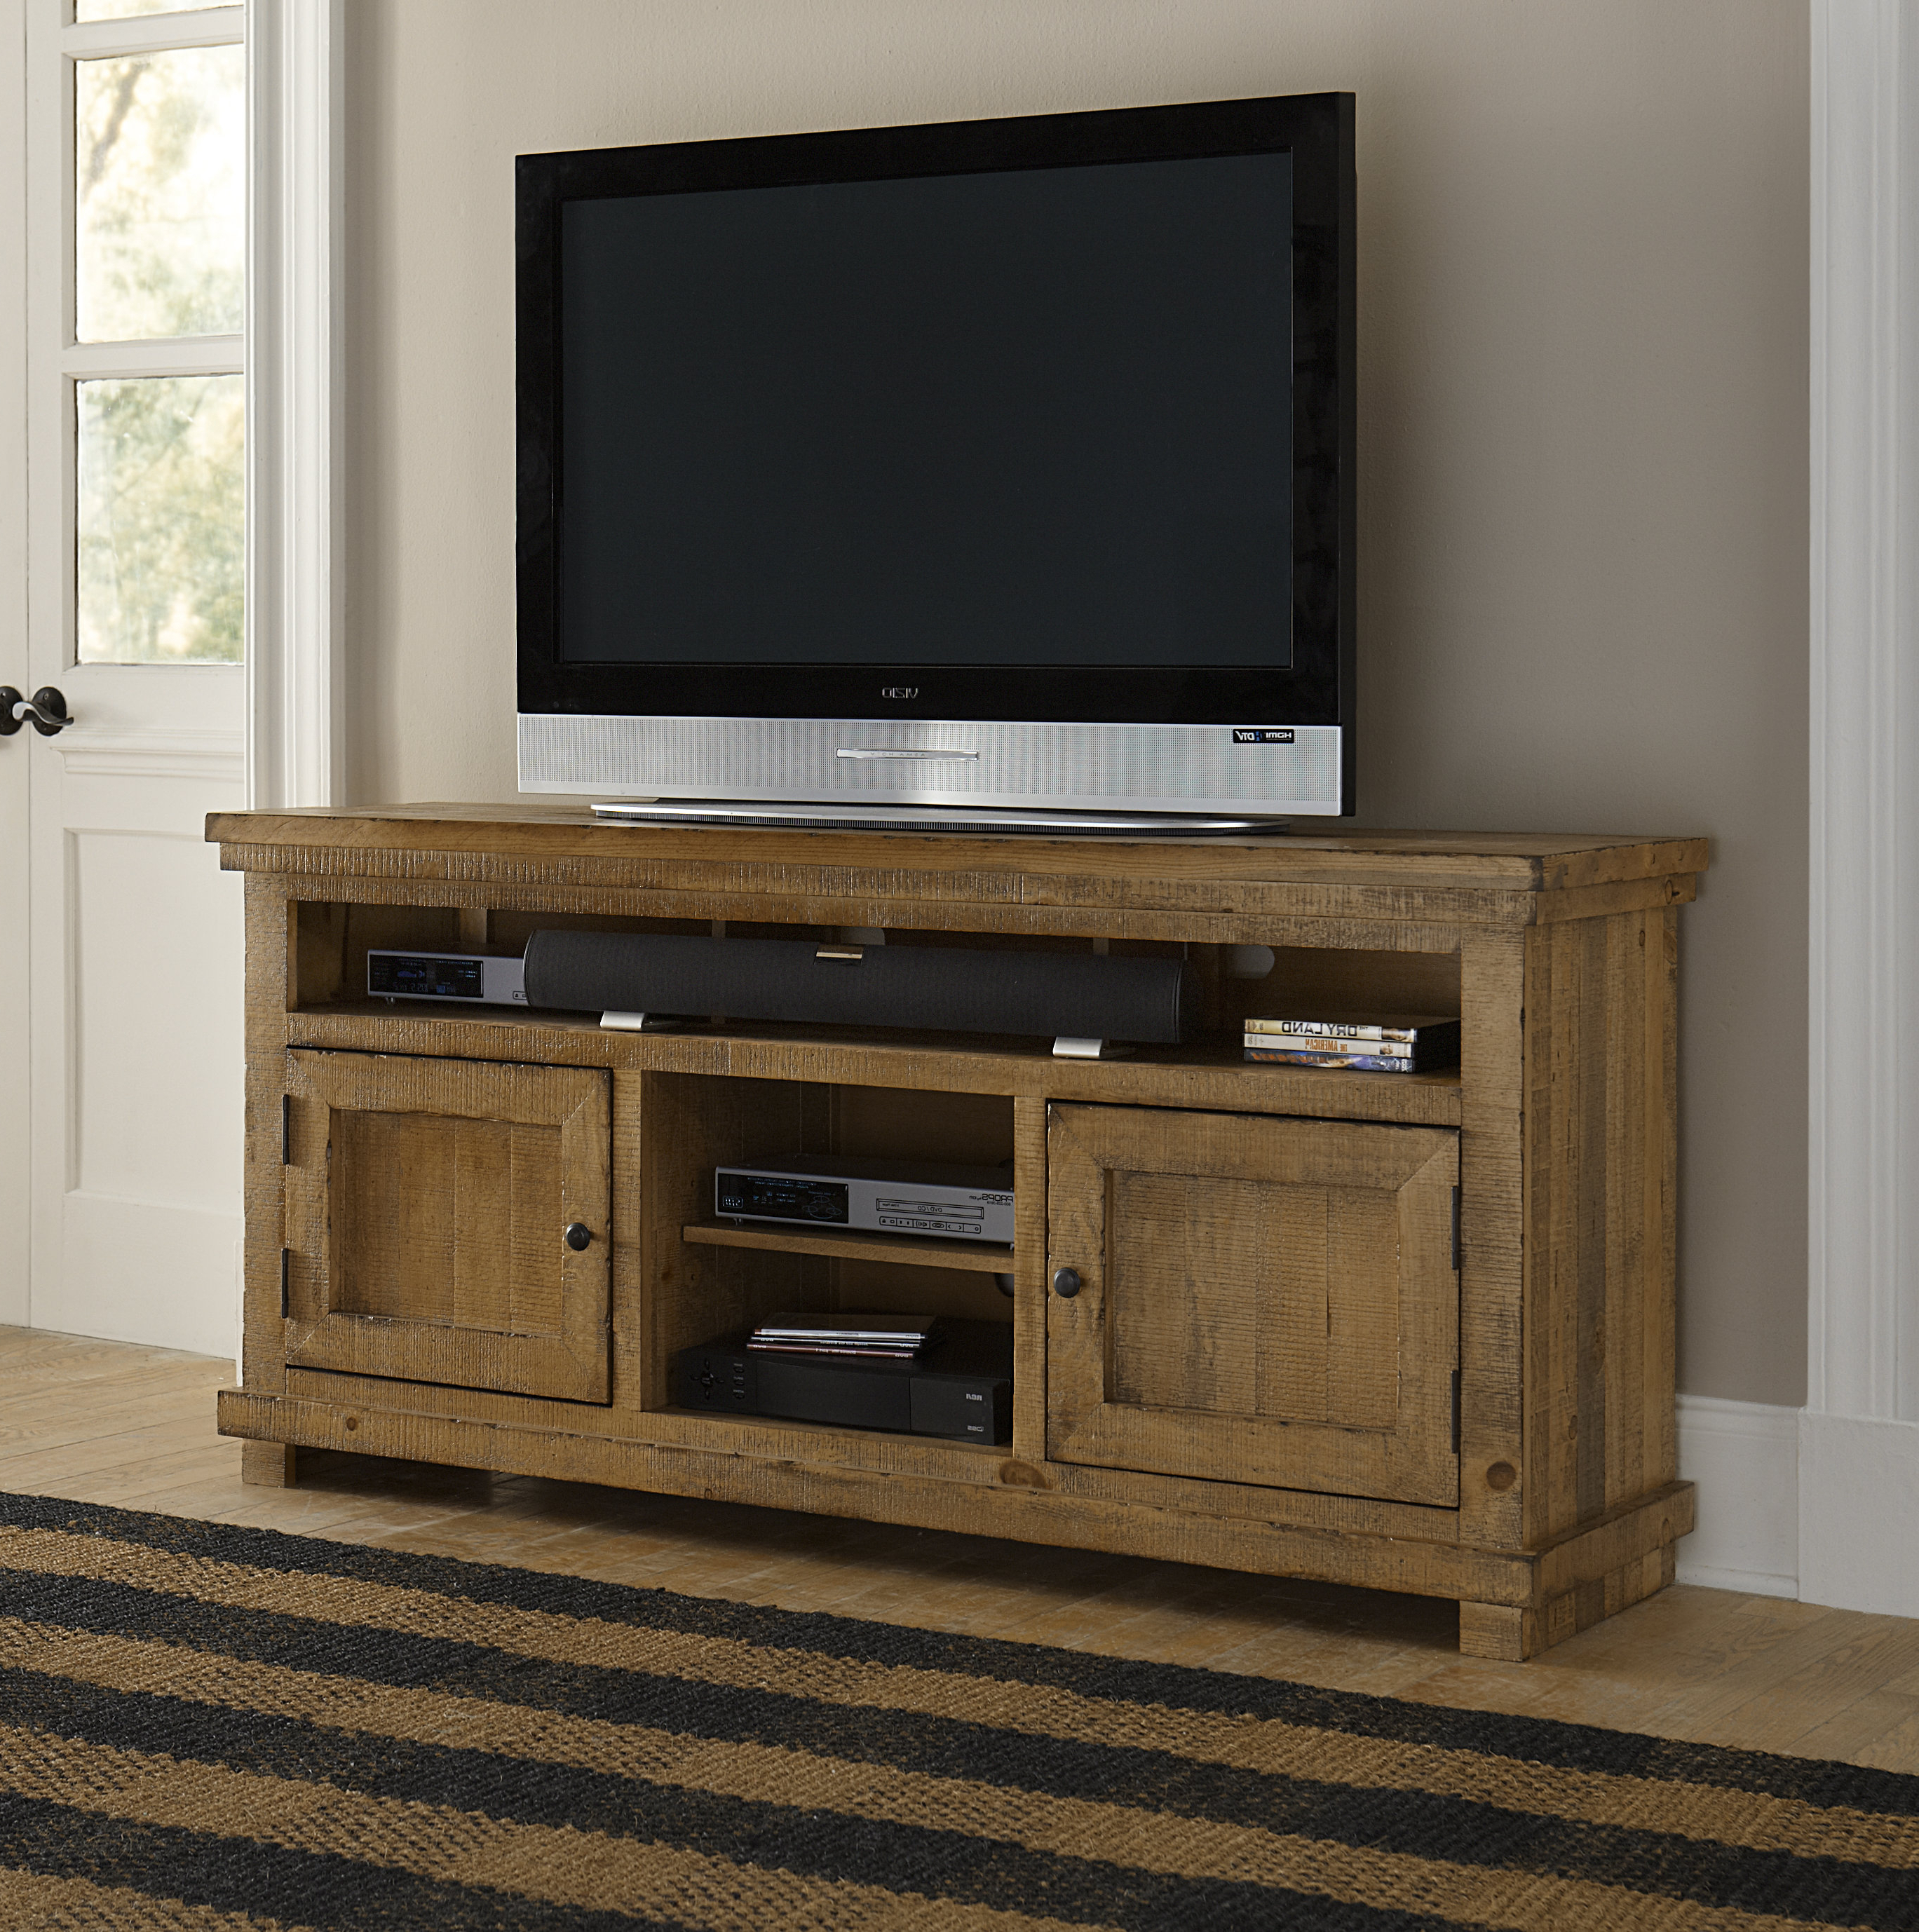 60 69 Inches Tv Stands | Birch Lane Intended For Edwin Black 64 Inch Tv Stands (Gallery 2 of 20)